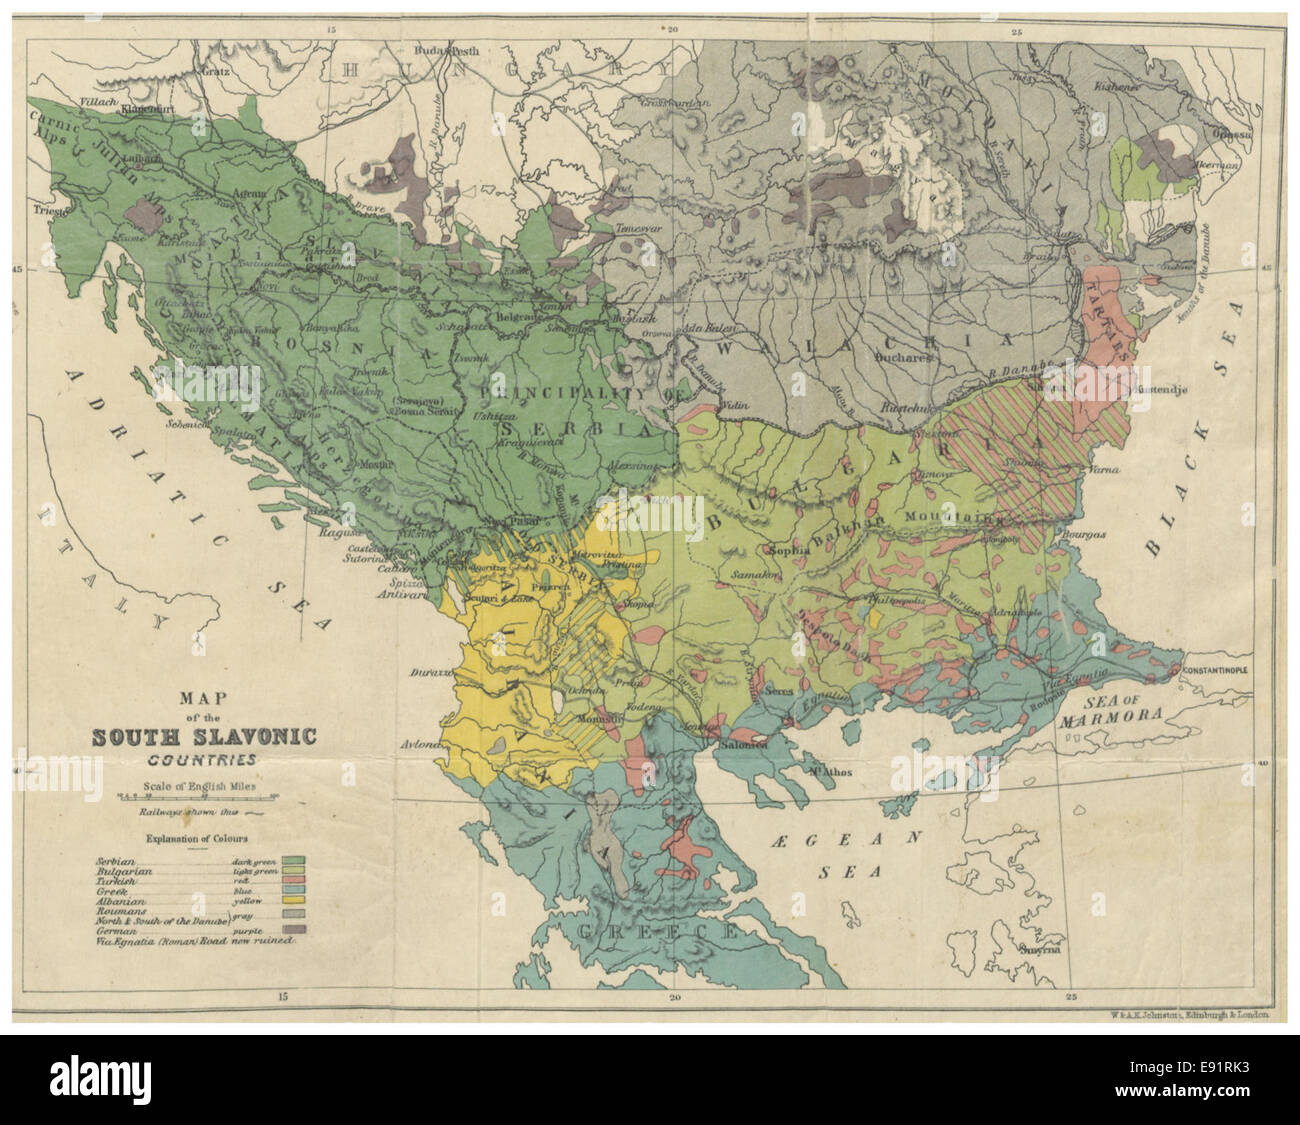 (1877) MAP of the SOUTH SLAVONIC COUNTRIES - Stock Image